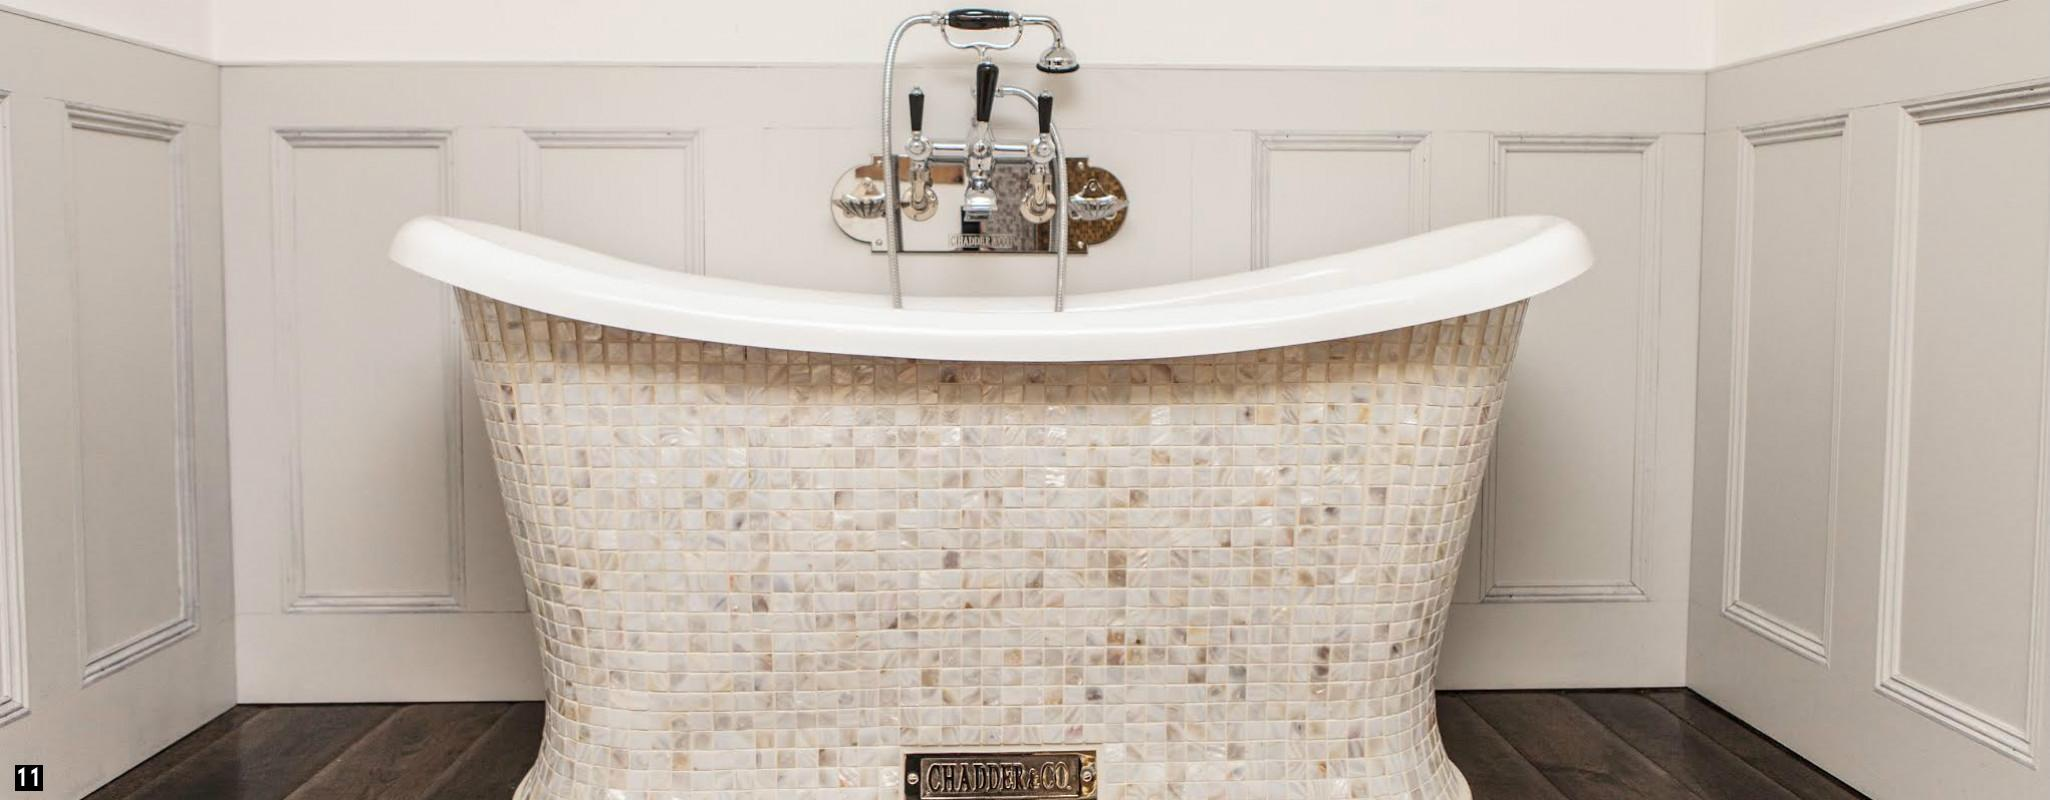 Mosaic Baths, Mosaic Bath , Vintage Nickel Taps and Fittings, Mosaic Roll Top Bath